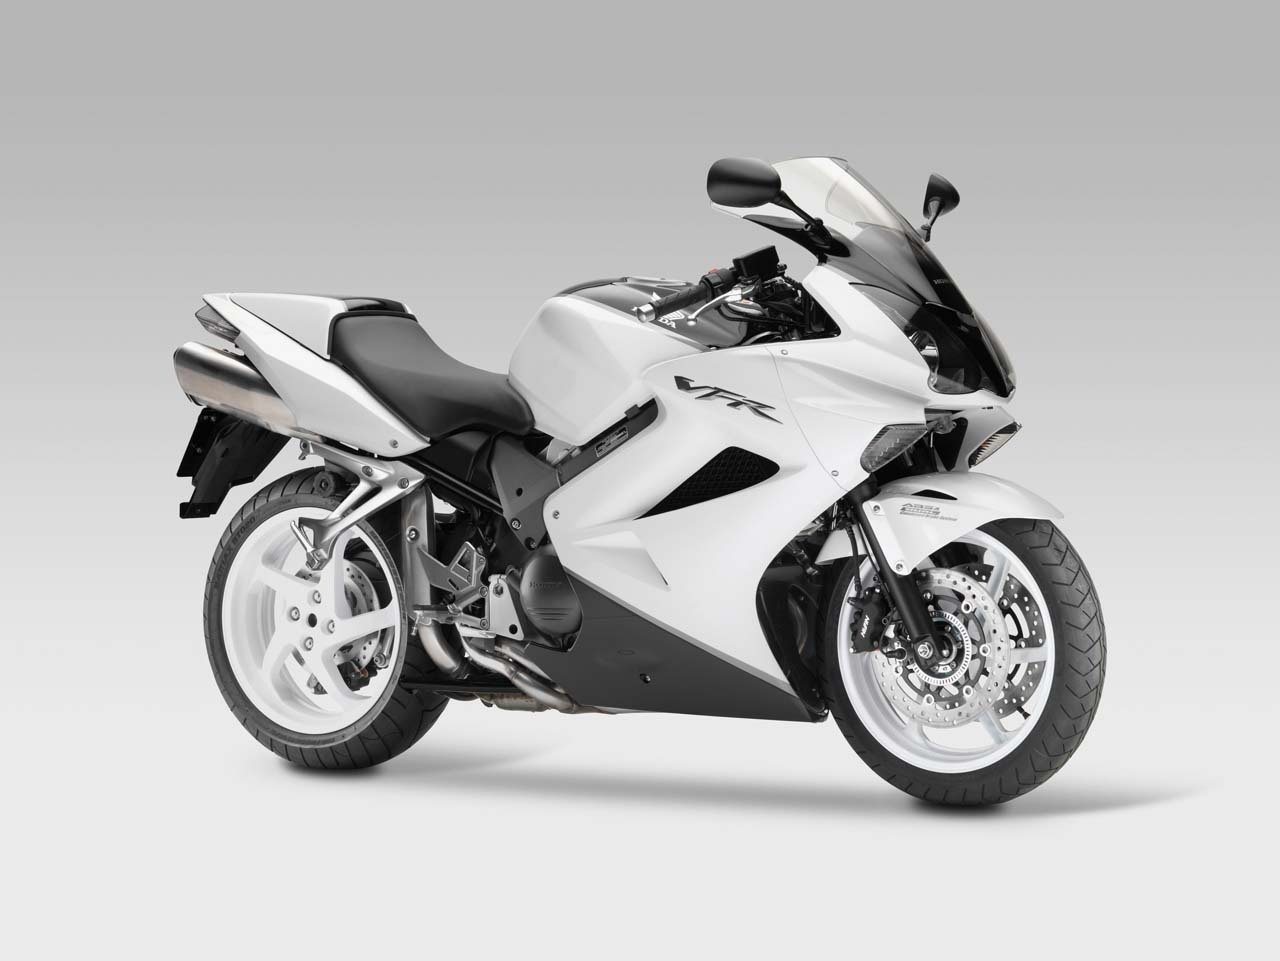 2010 Honda VFR800 Interceptor ABS #3